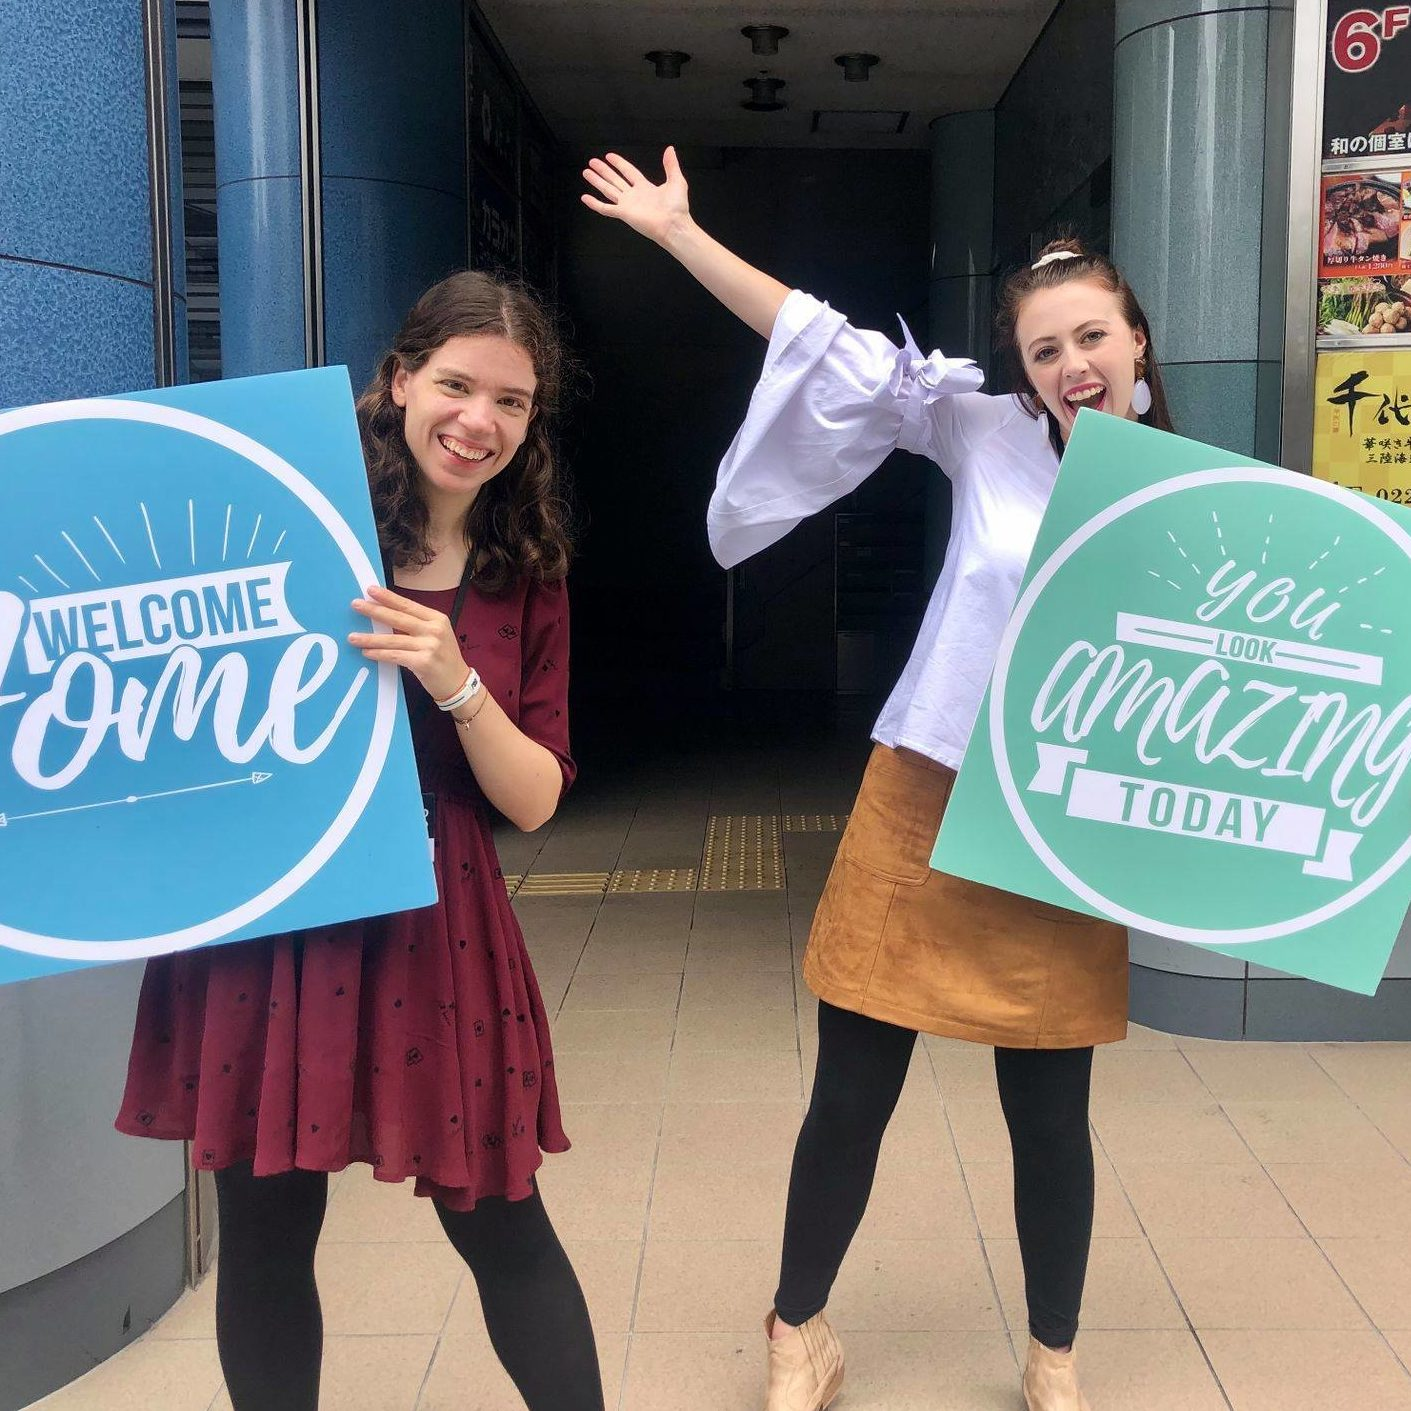 Lifehouse Sendai, two girls smiling and welcoming people with bright signs